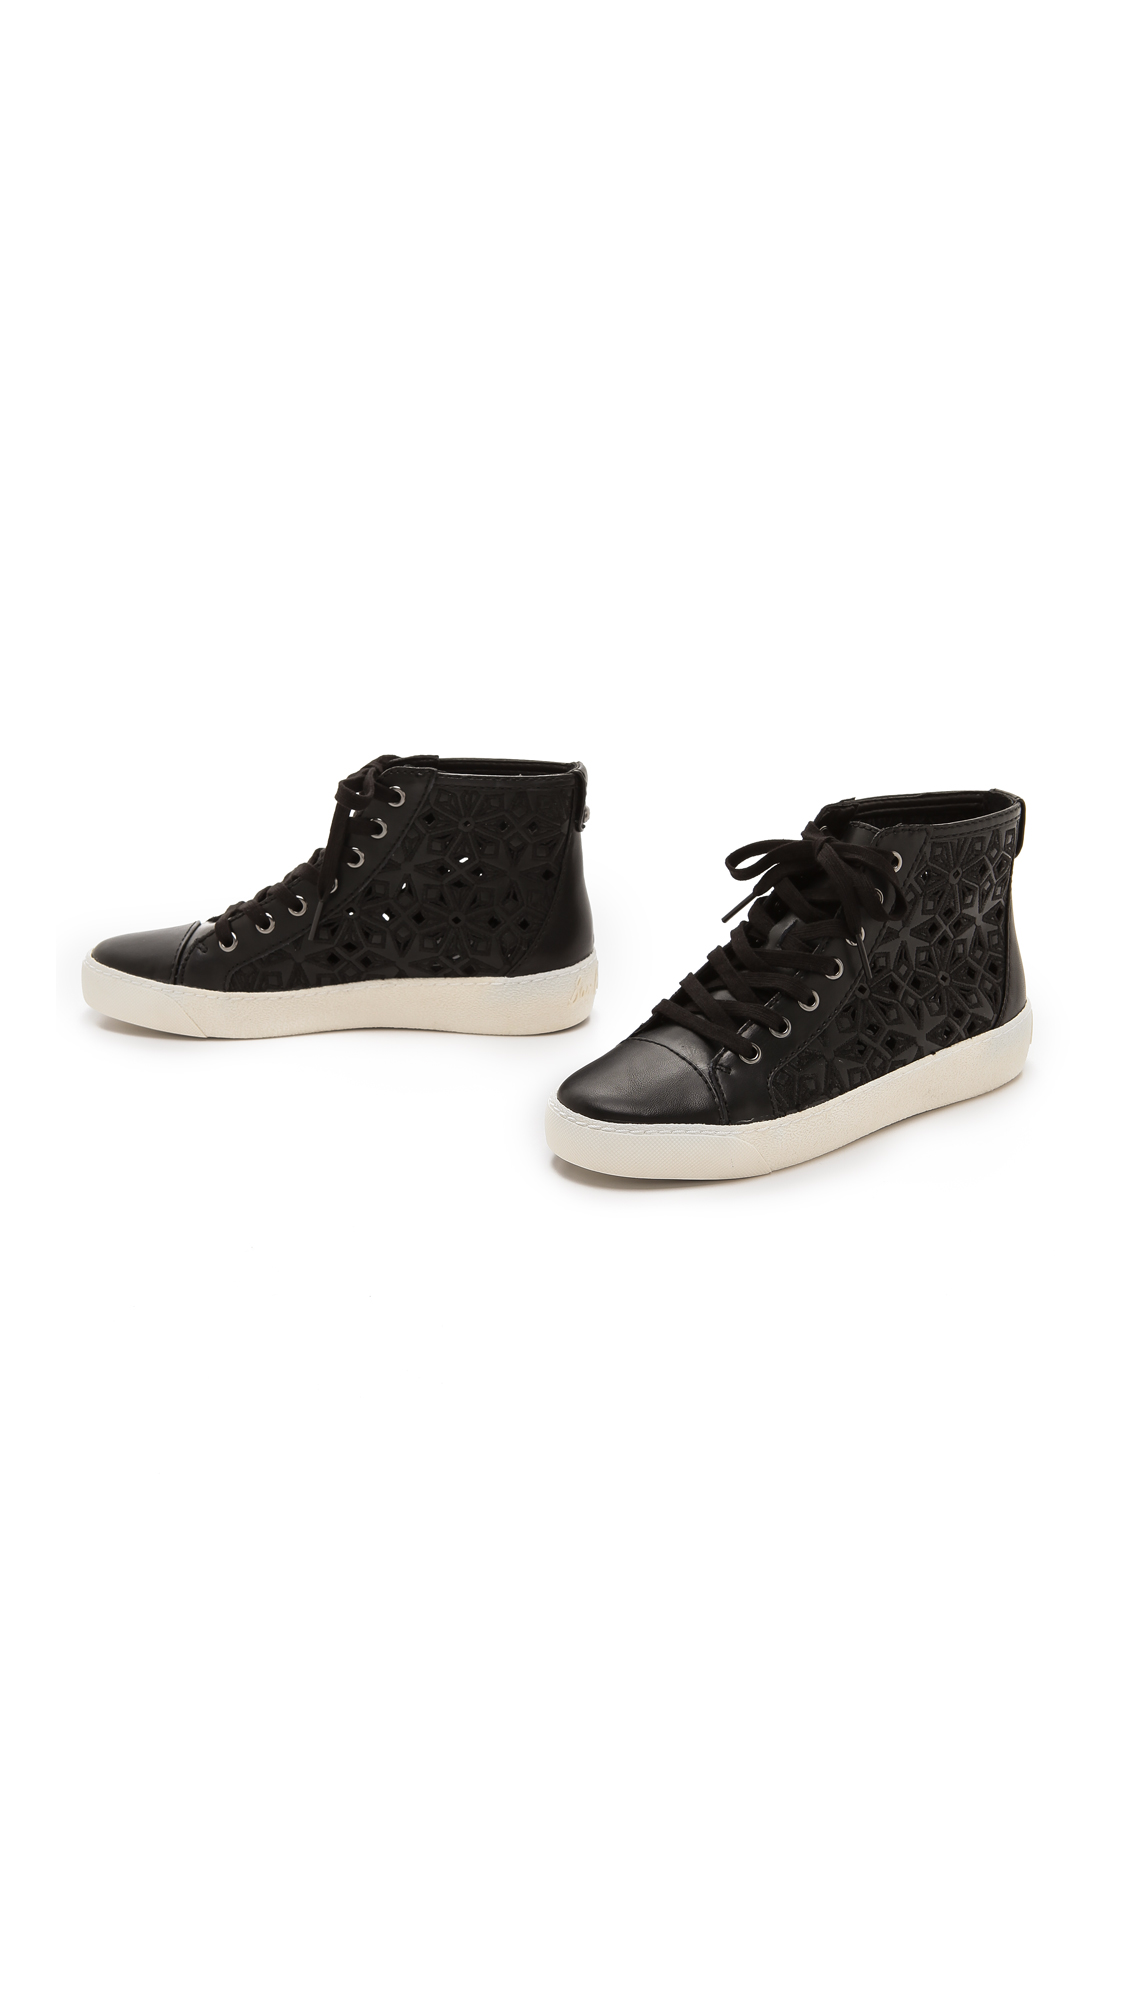 49000216c67a Sam Edelman Branson Perforated Sneakers